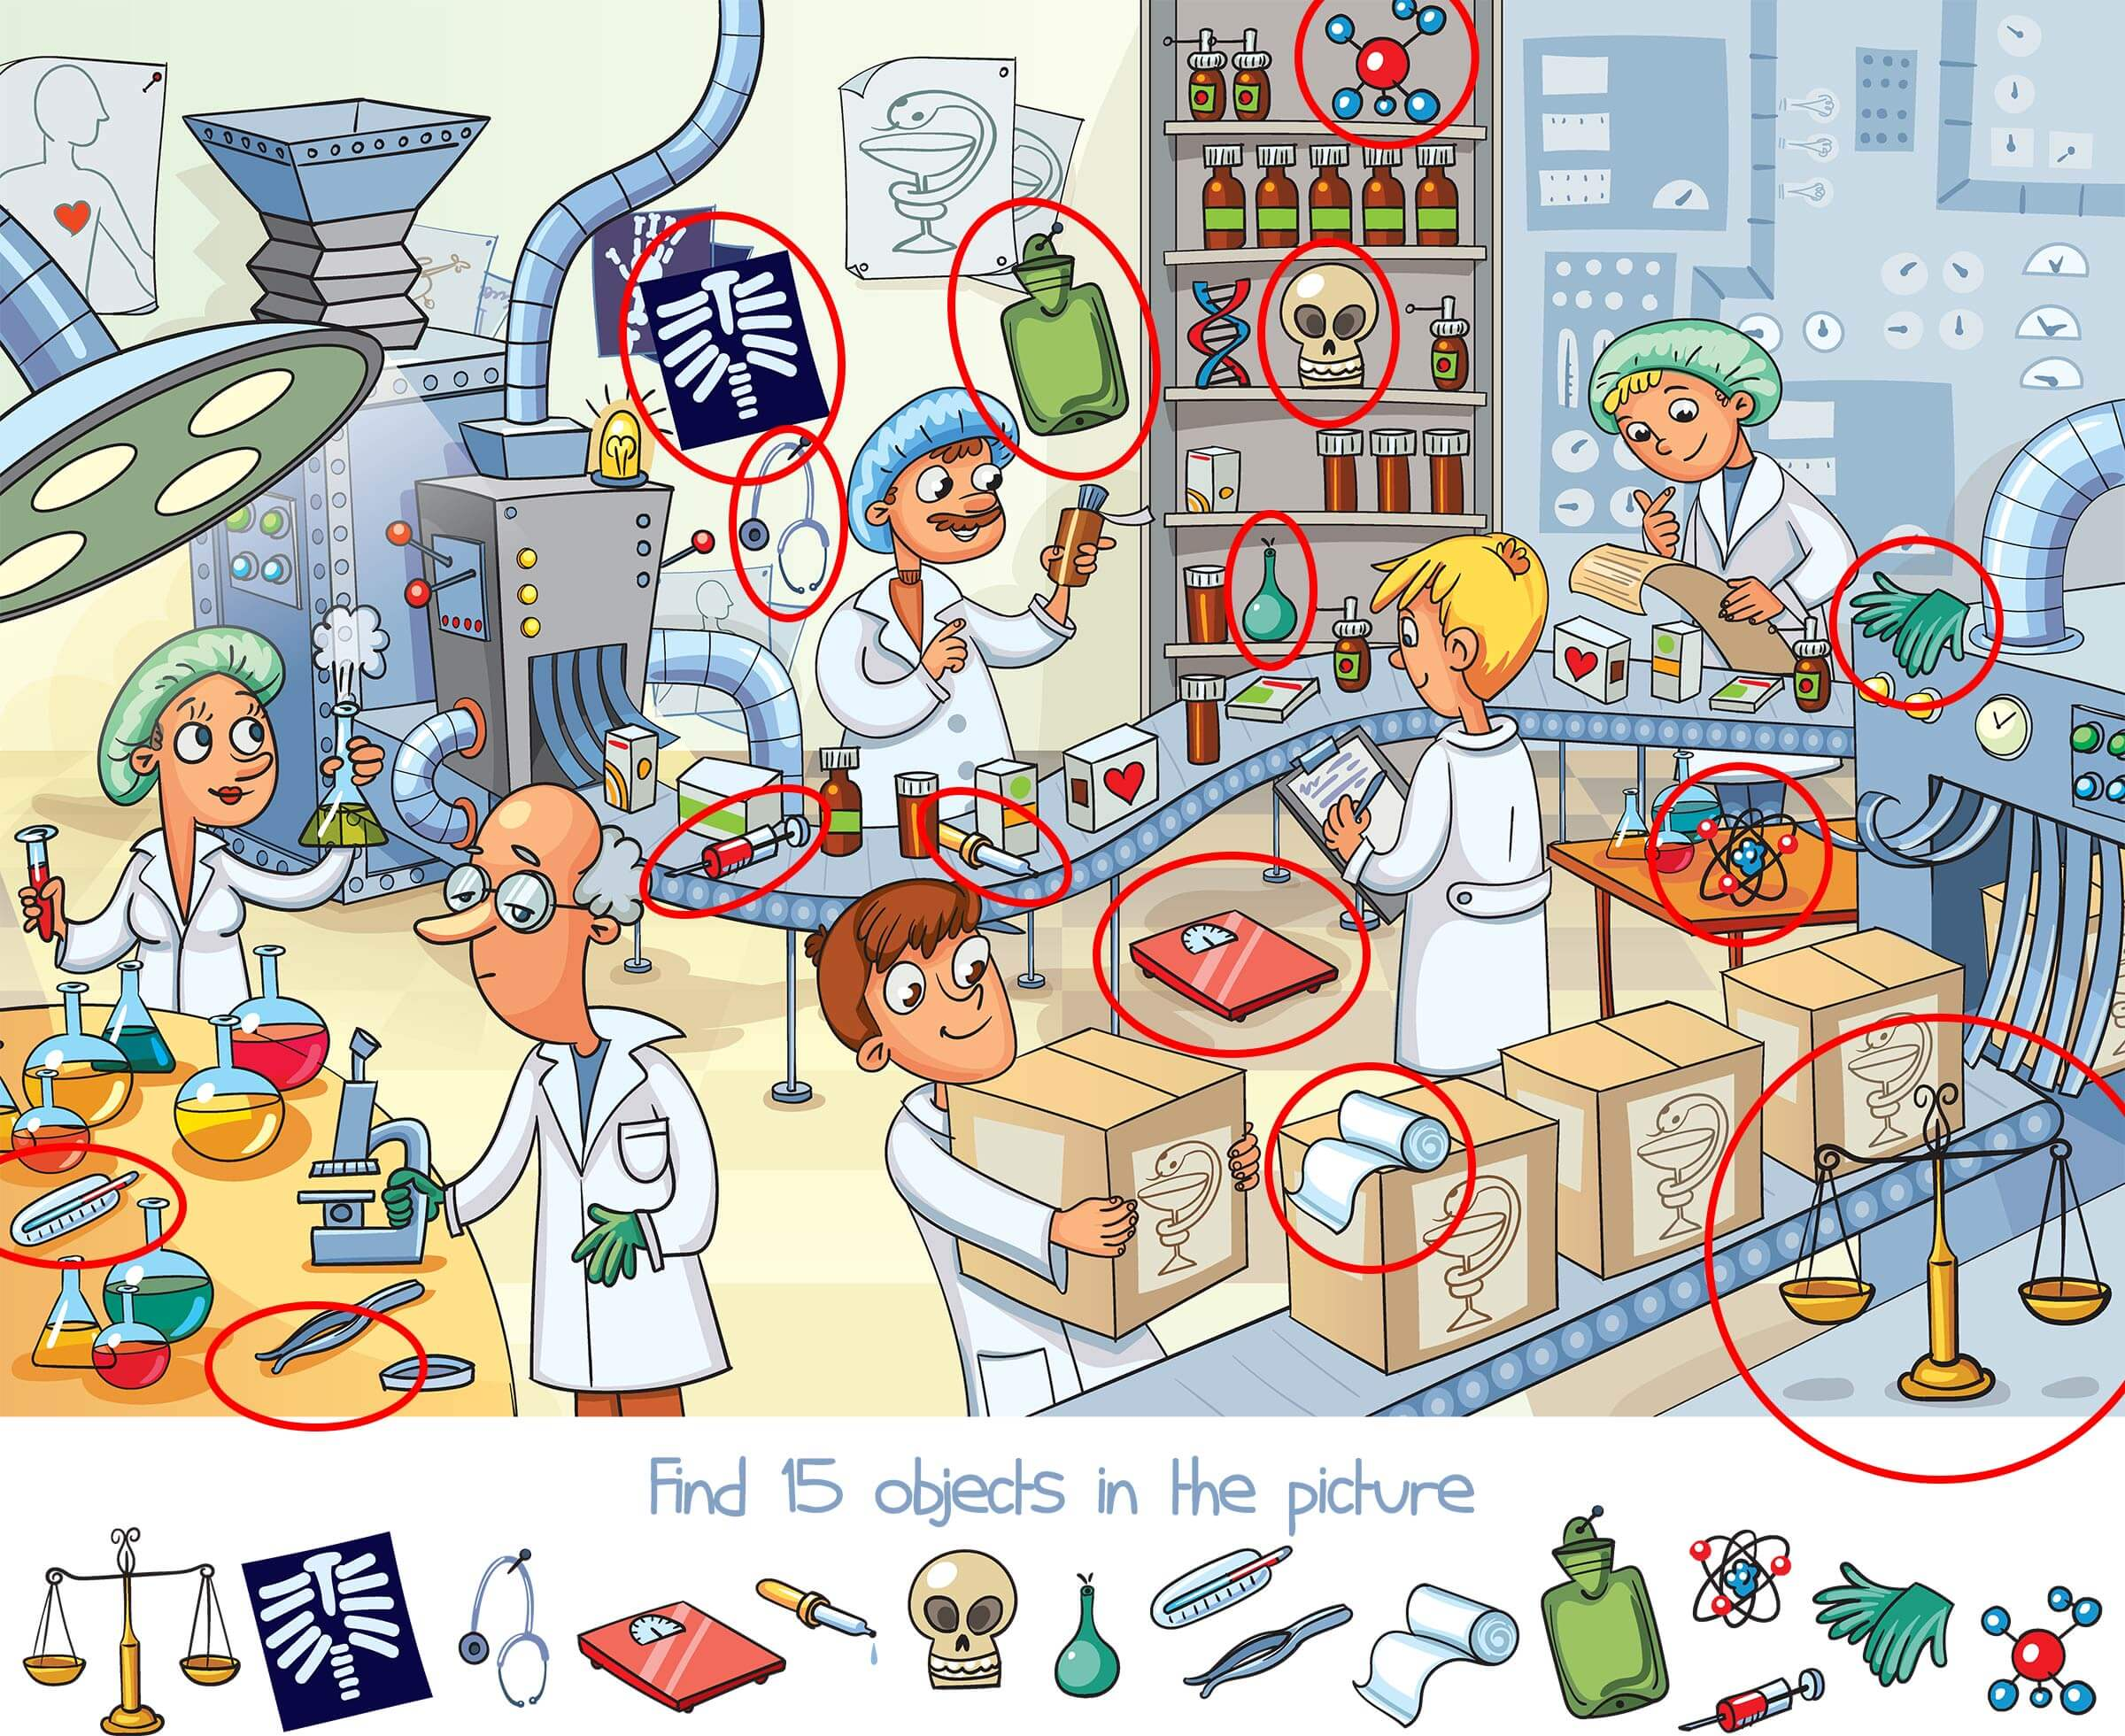 Can You Find the 15 Objects Hidden in This Picture.